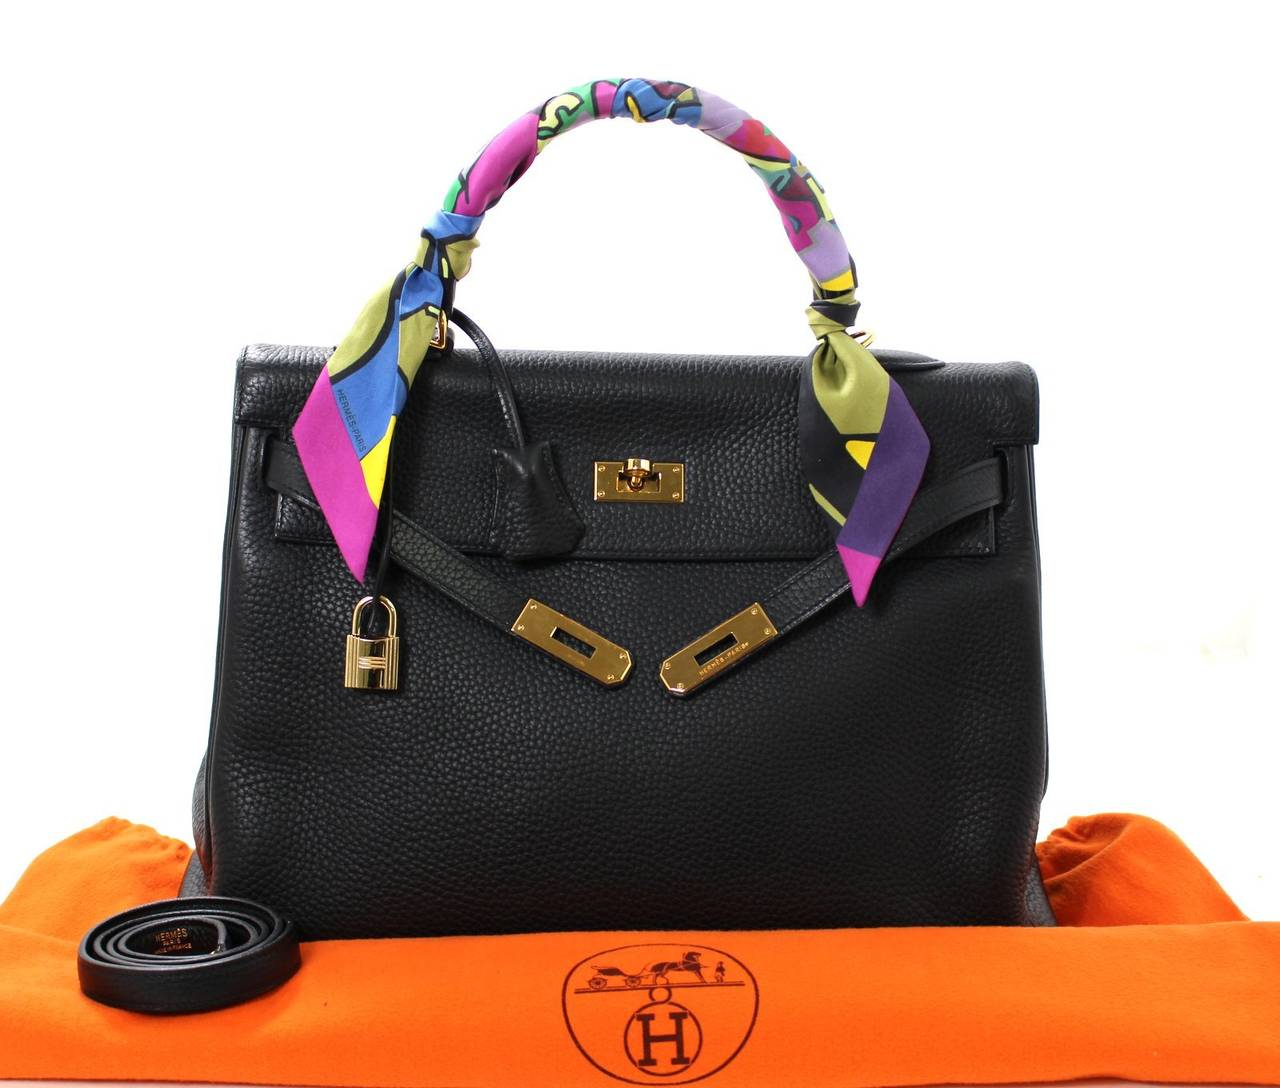 HERMES Kelly Bag- Black Clemence Leather with  Gold, 35 cm 8